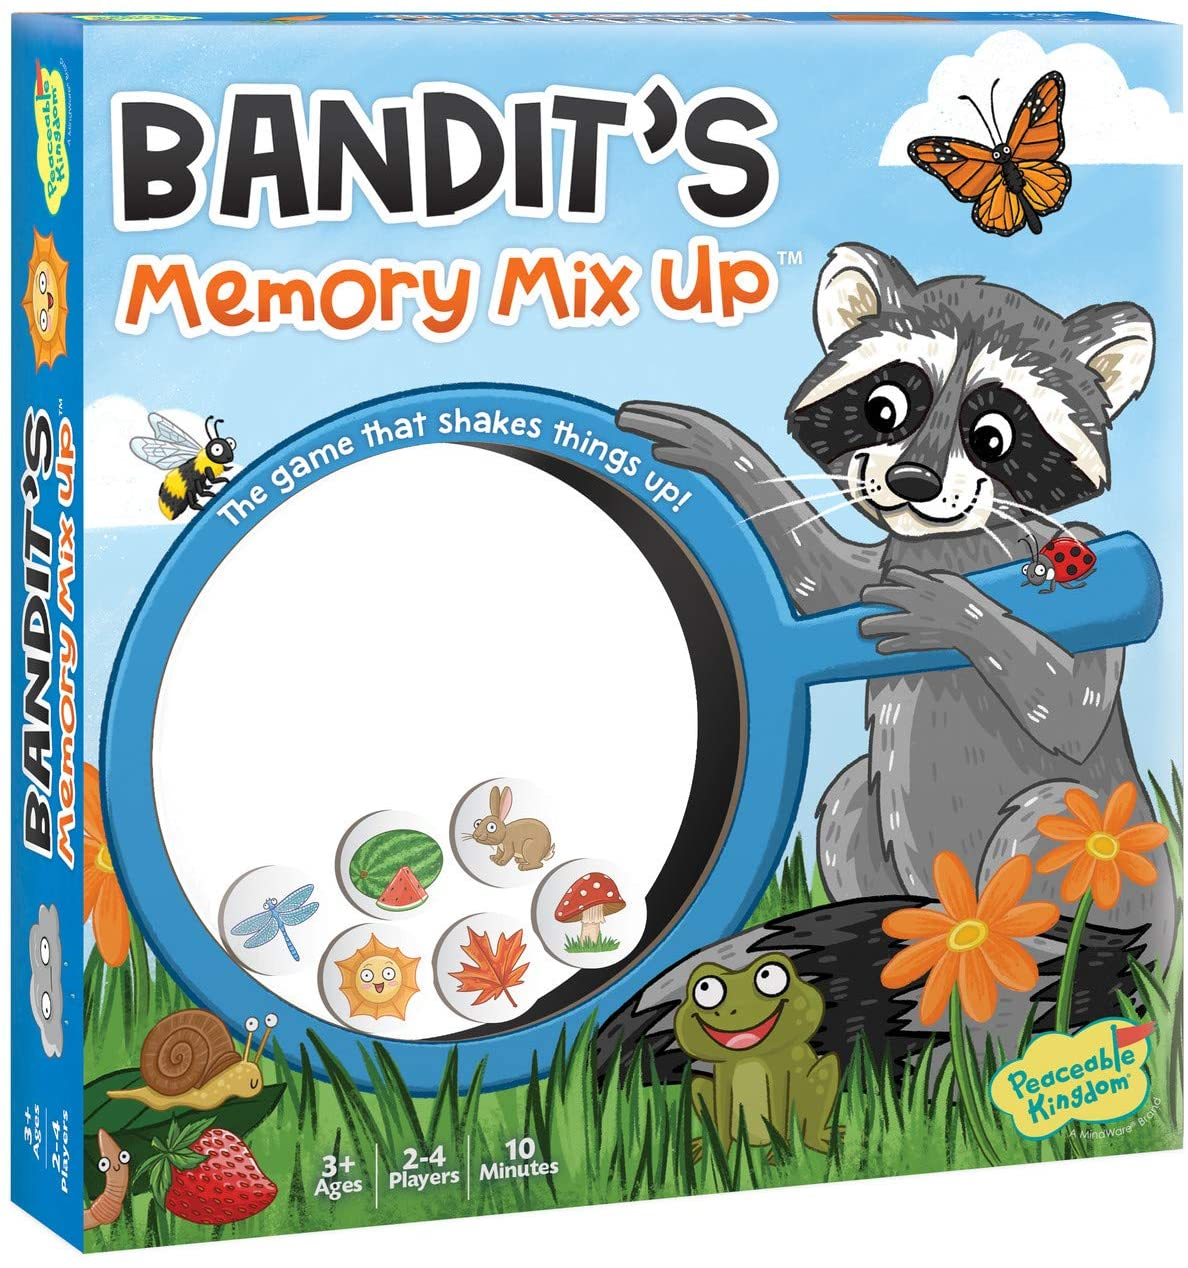 Banditd Memory Mix Up